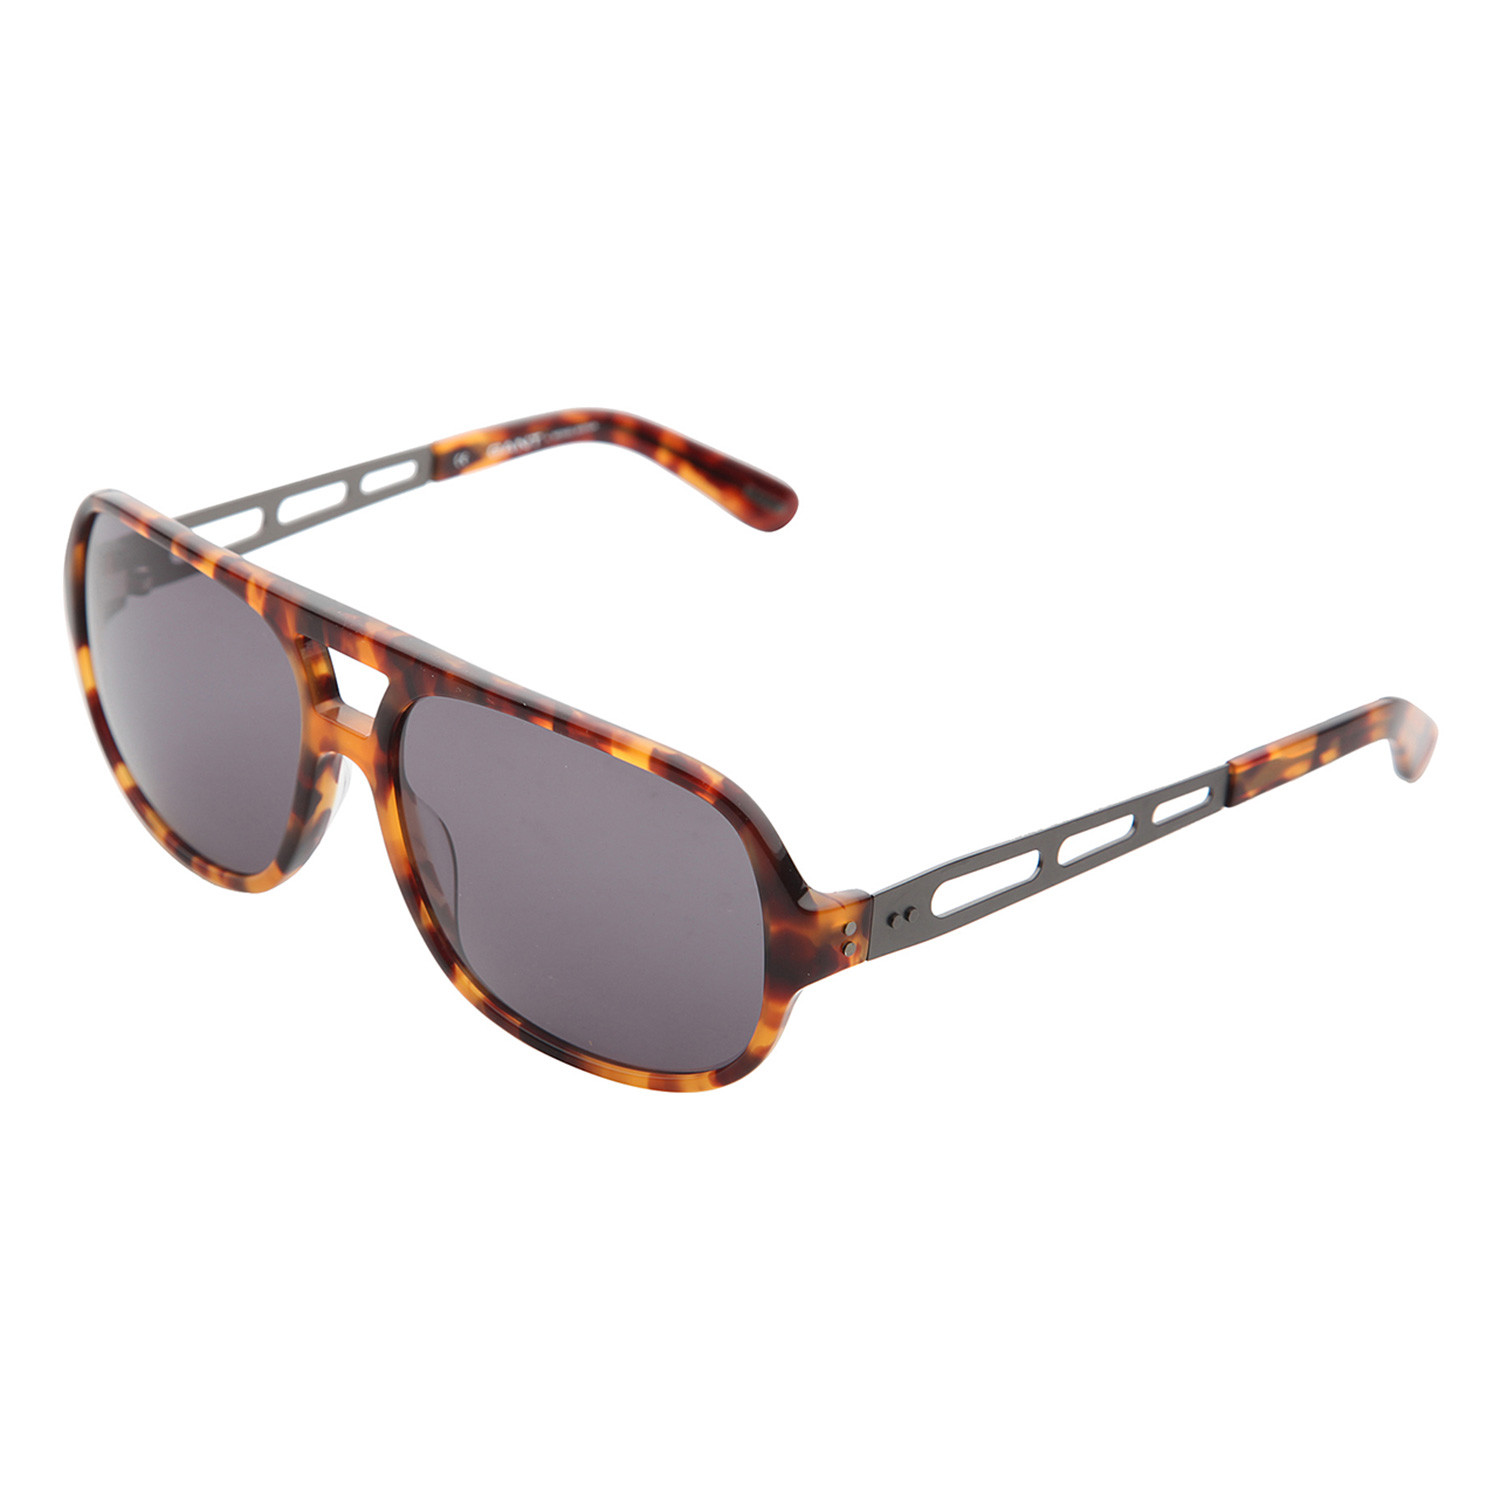 9854449446 GANT    Bridged Aviator Sunglasses    Thick Tortoiseshell ...